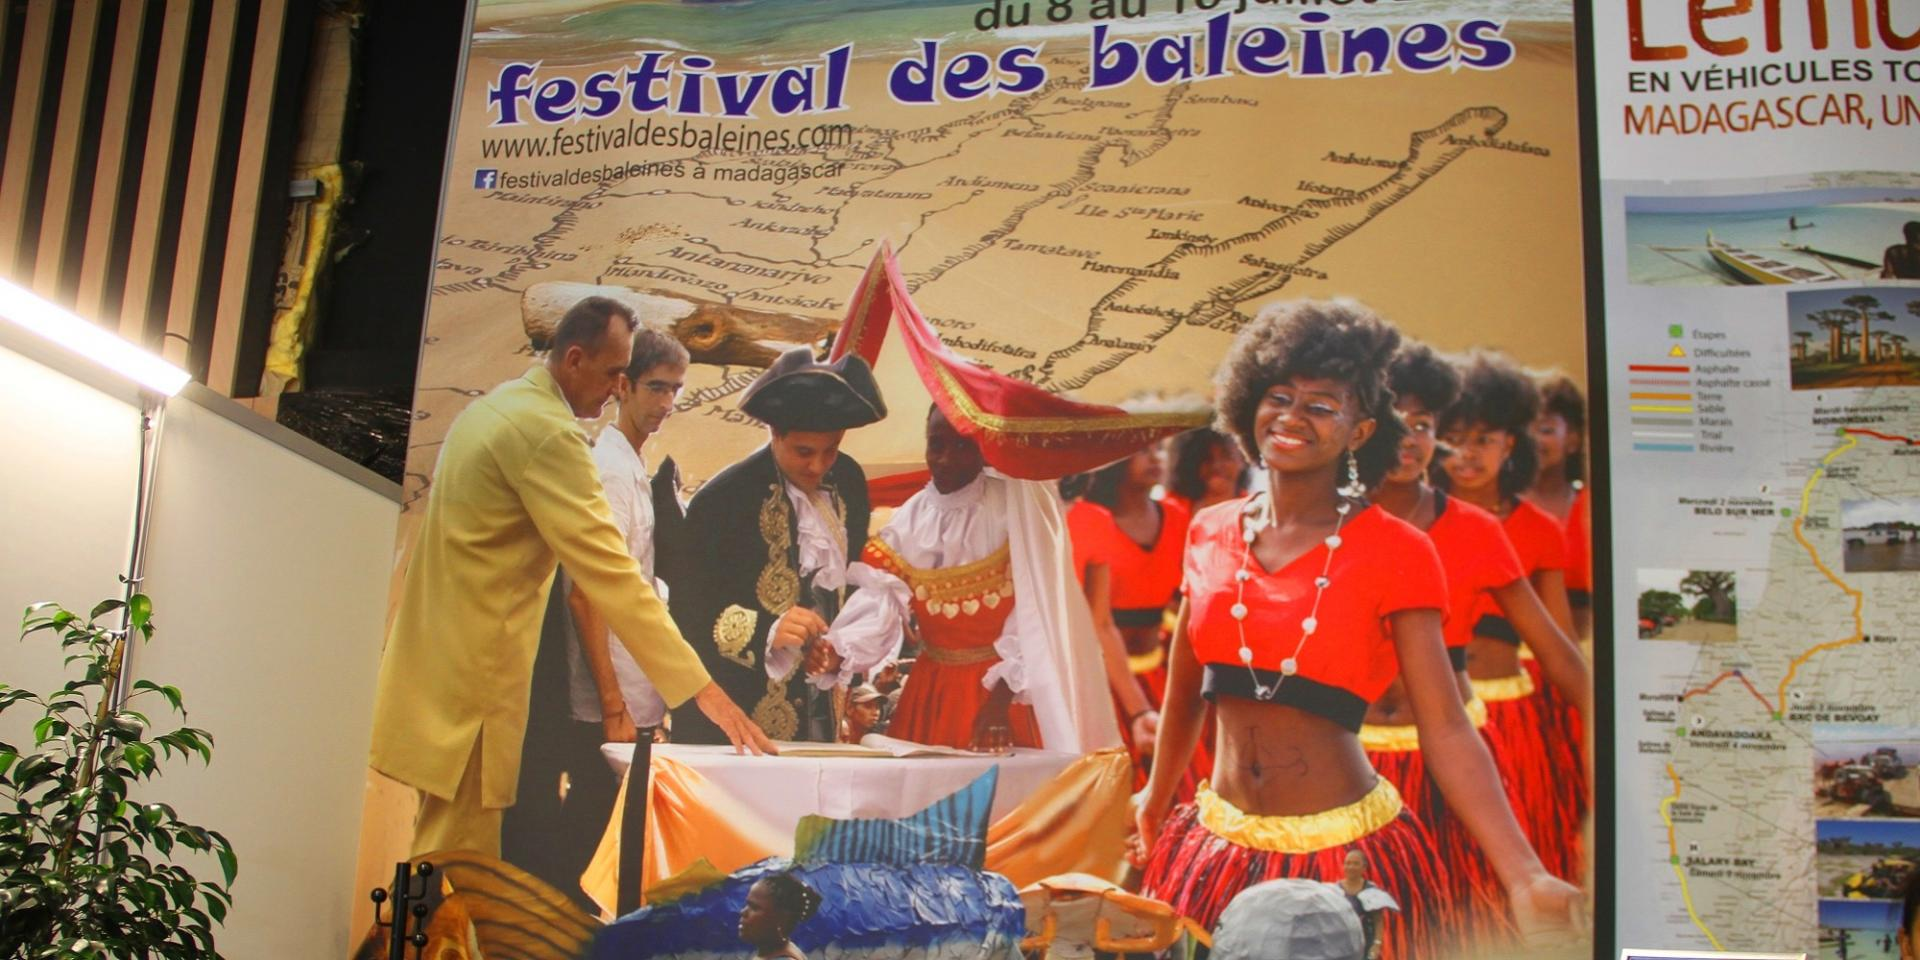 LE FESTIVAL DES BALEINES AU SALON INTERNATIONAL DU TOURISME